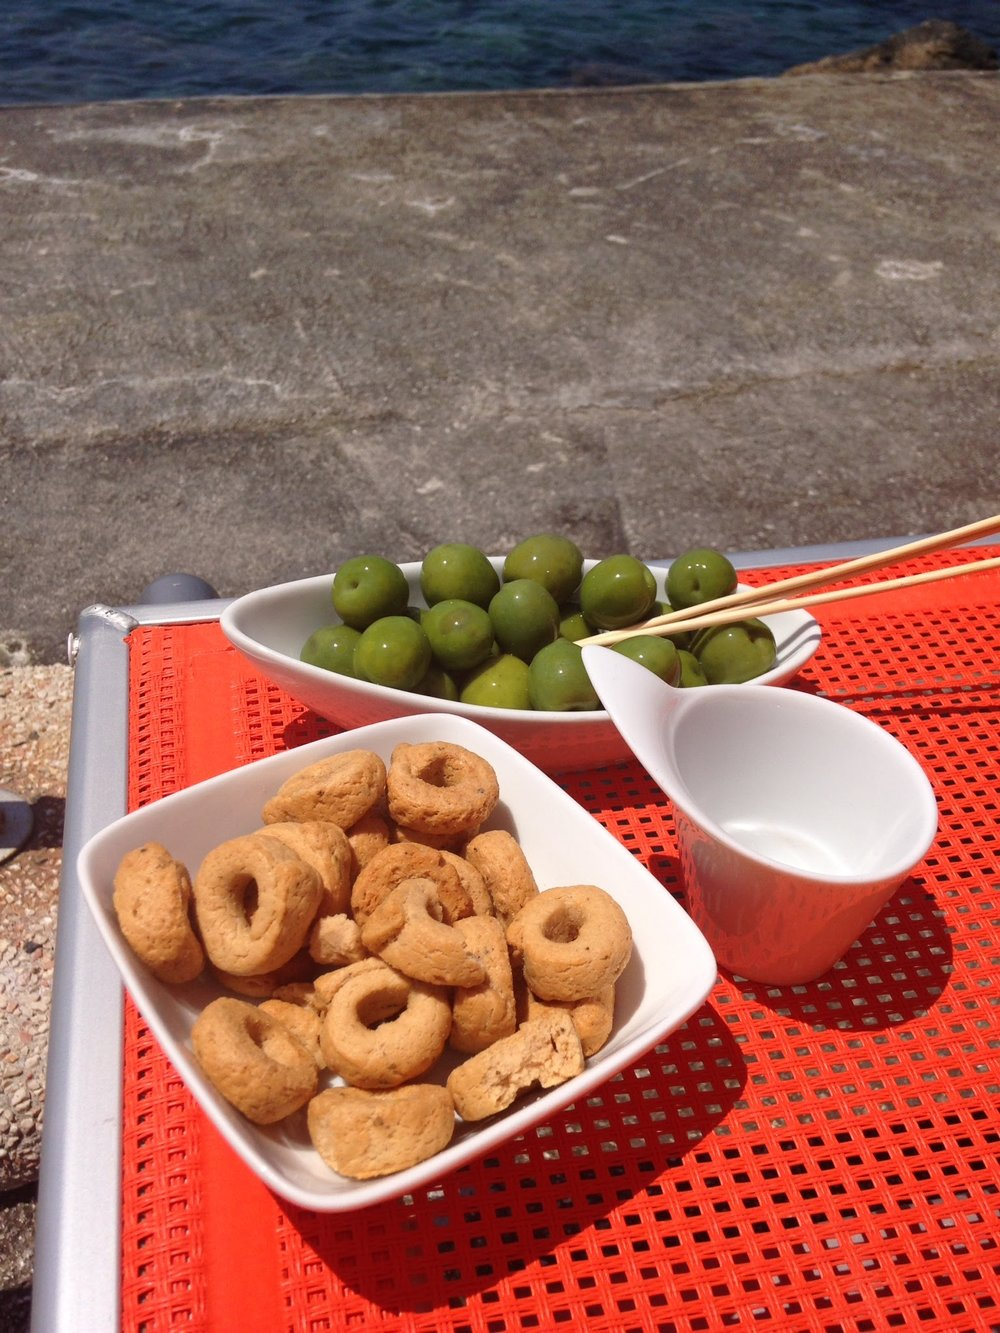 My favorite snack of taralli and olives